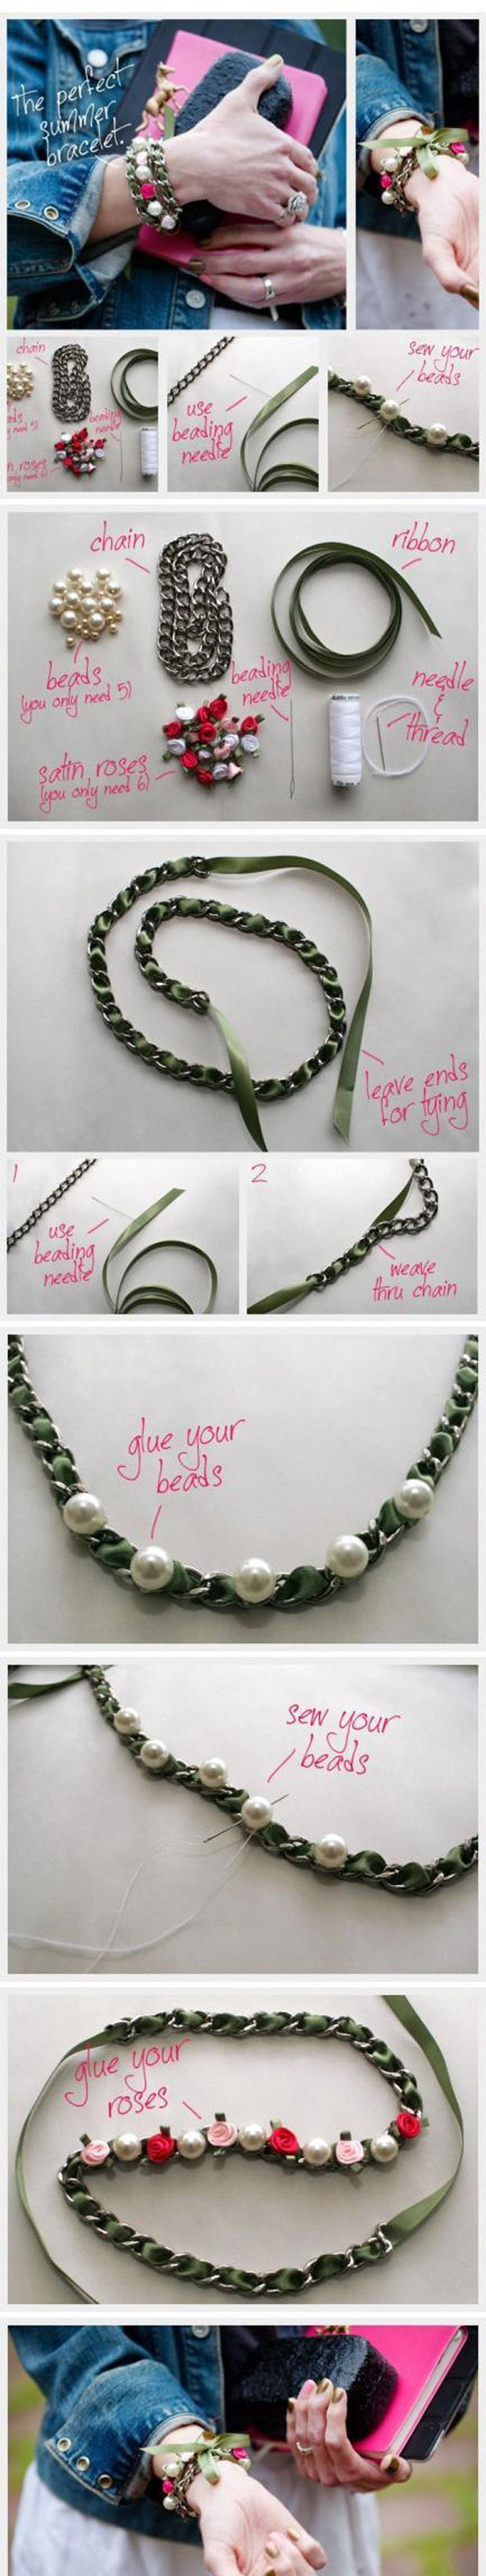 DIY-Perfect-Summer-Bracelet